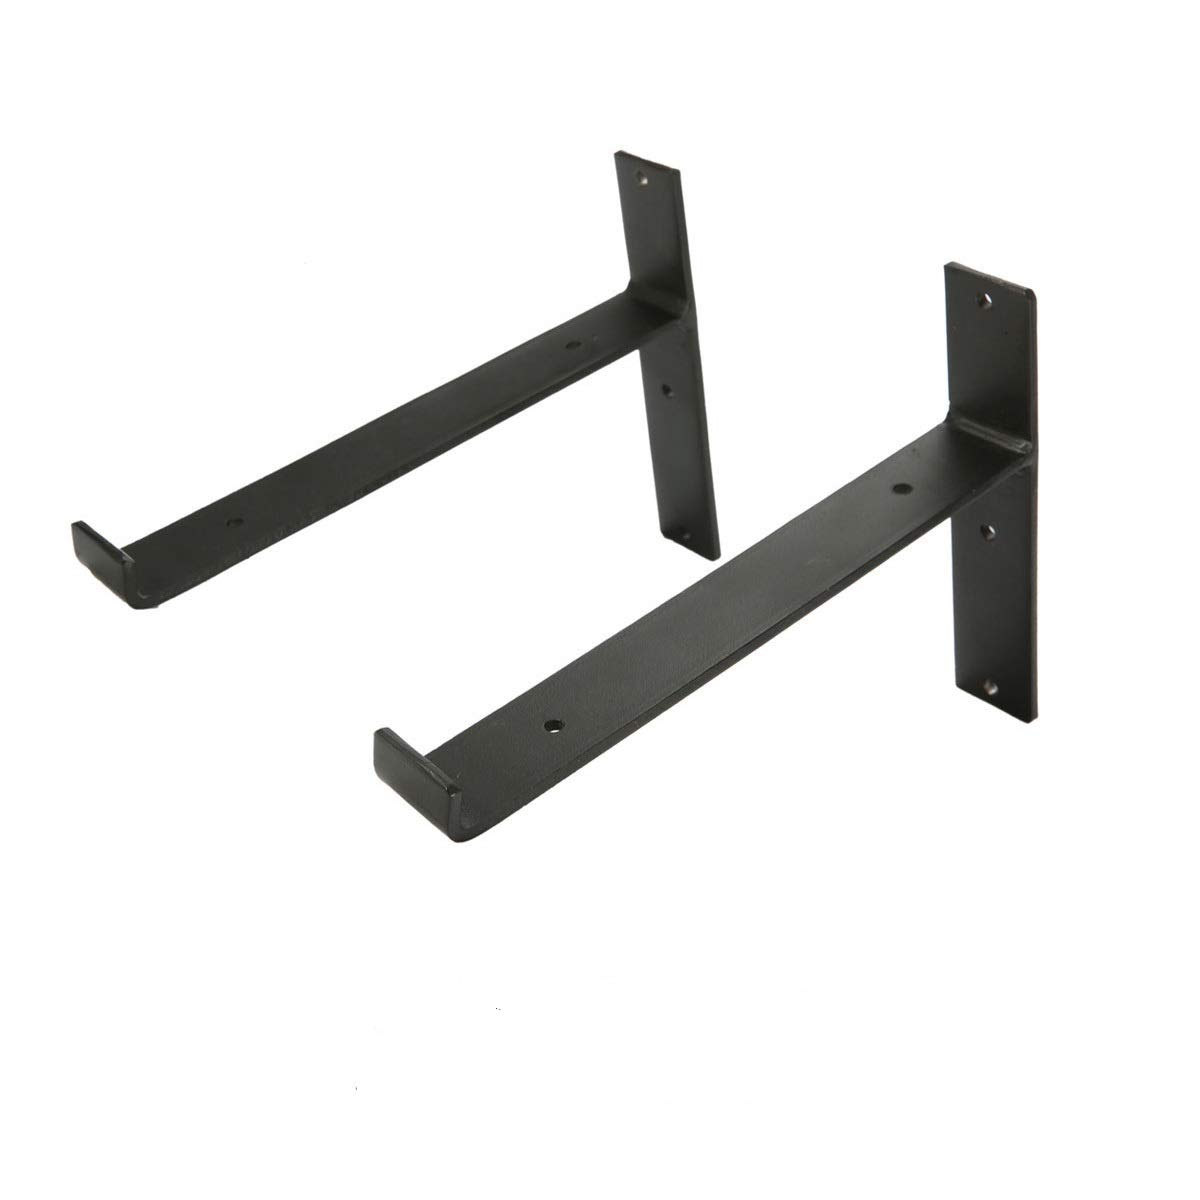 KINGSO Metal Wall Shelf Brackets 8''L x 6''H Rustic Shelf Supports, Flush Fit, Hardware Only - Bracket Set Of 2, Includes Screws & Wall Anchors by KINGSO